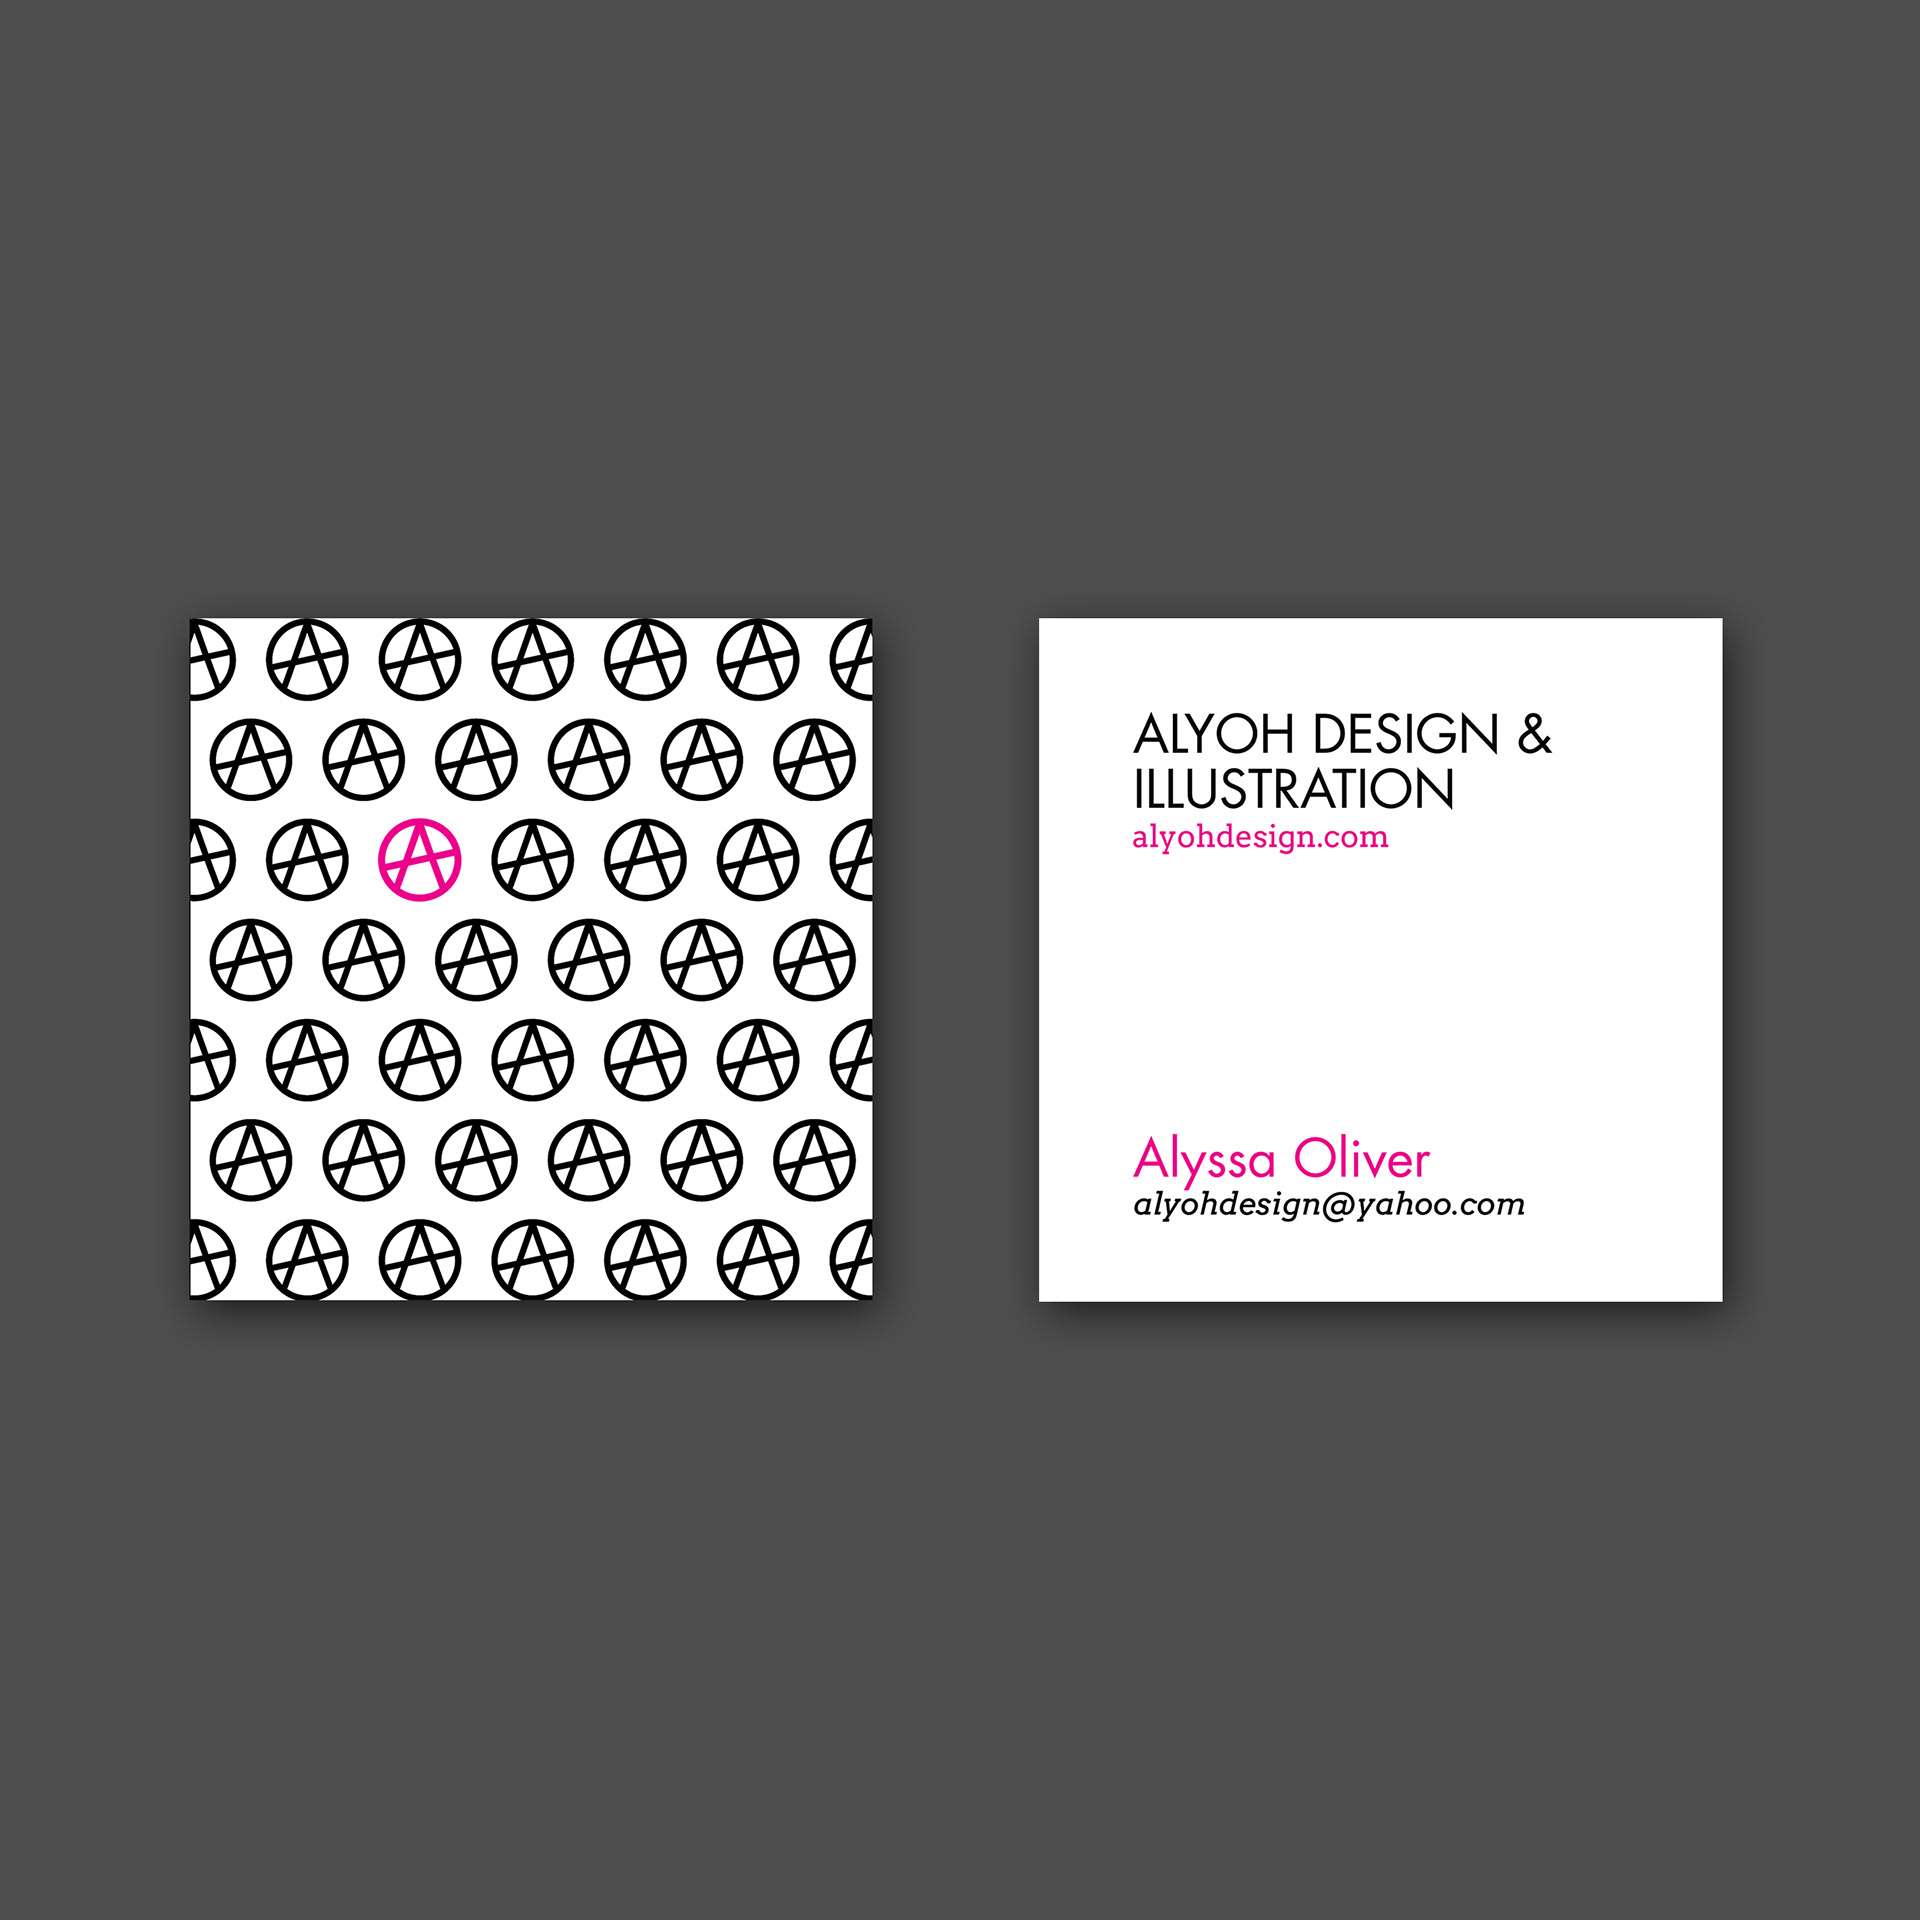 Alyssa oliver alyoh design business cards finally got around to designing some business cards for myself utilizing my ao anarchic logo and my brand color of magenta colourmoves Images